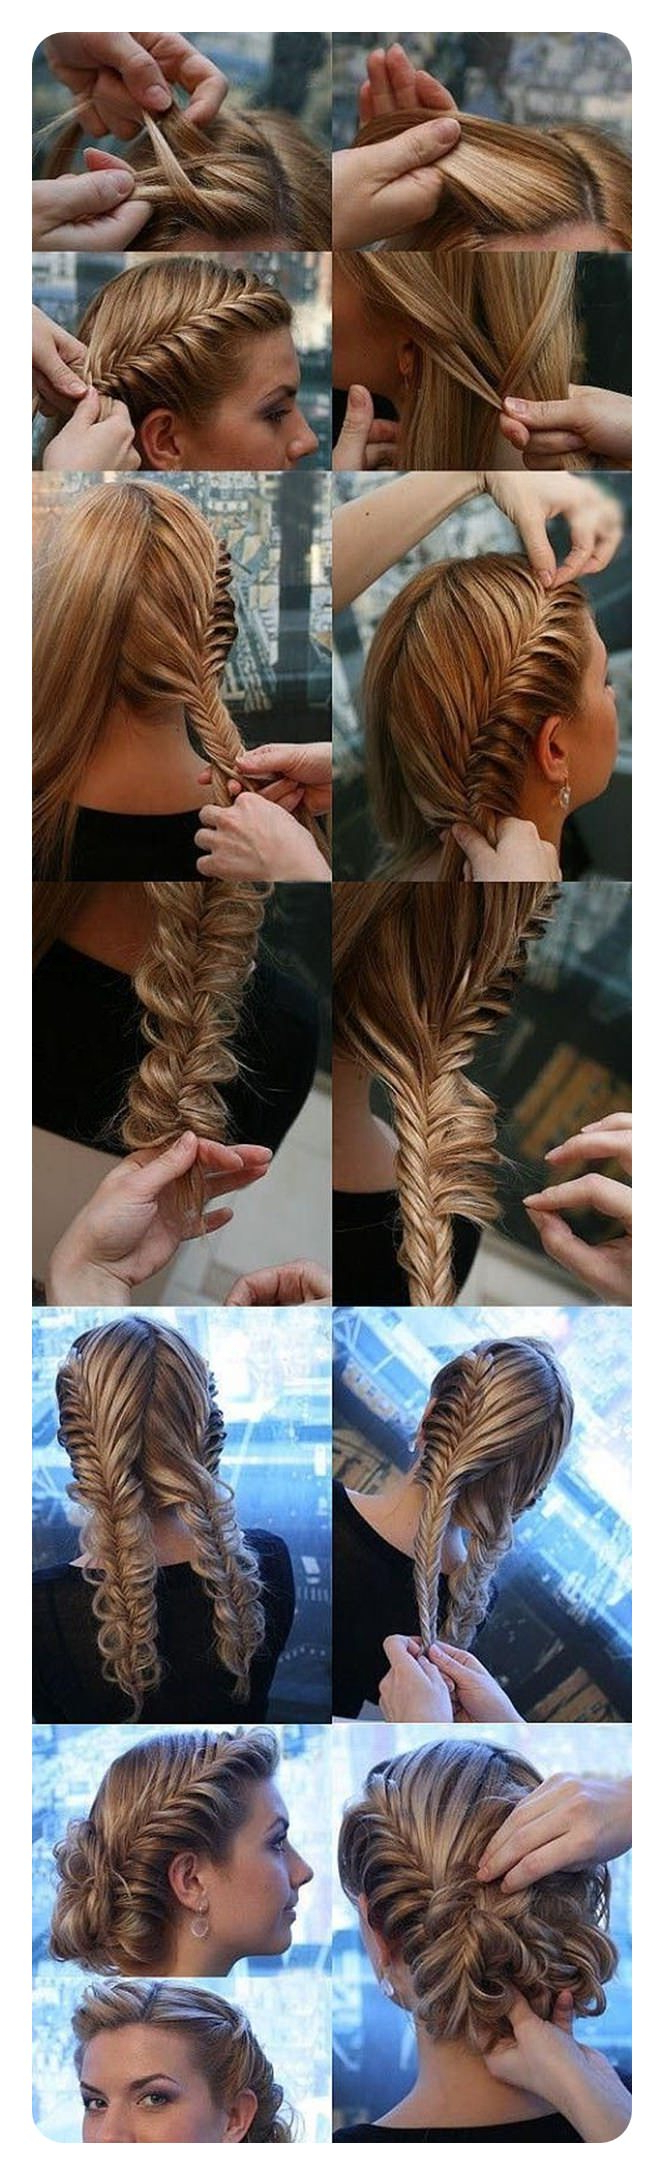 Most Current Messy Fishtail Hairstyles For Oblong Faces Intended For Fishtail Braid A 104 Of Hot And Happening Hairstyles For This Year (View 17 of 20)